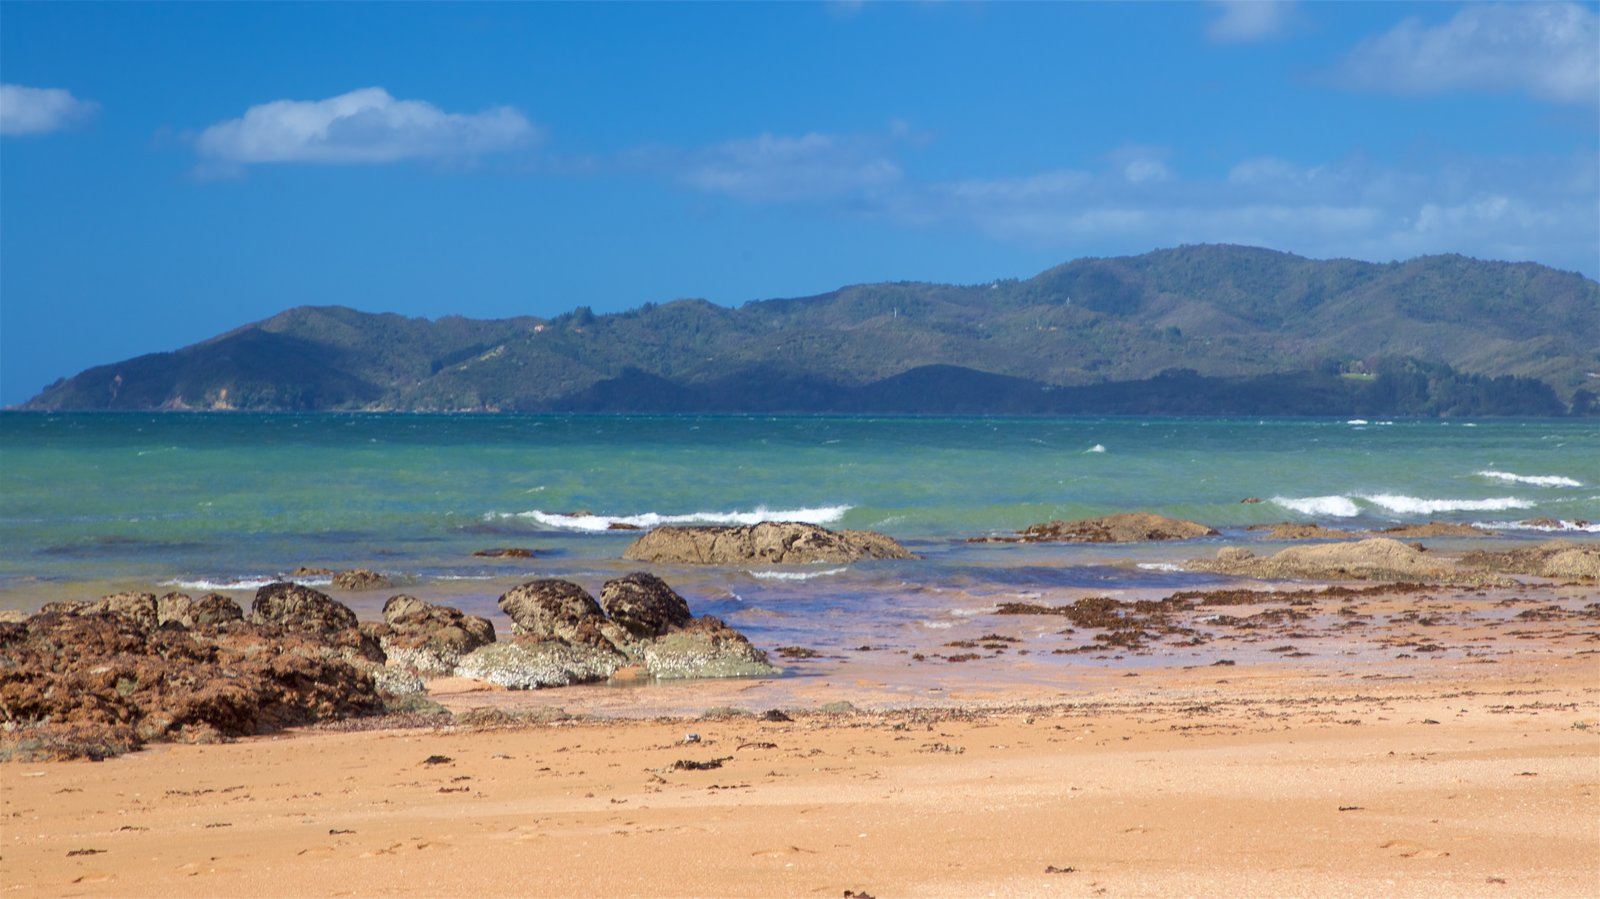 Cable Bay showing general coastal views and a beach